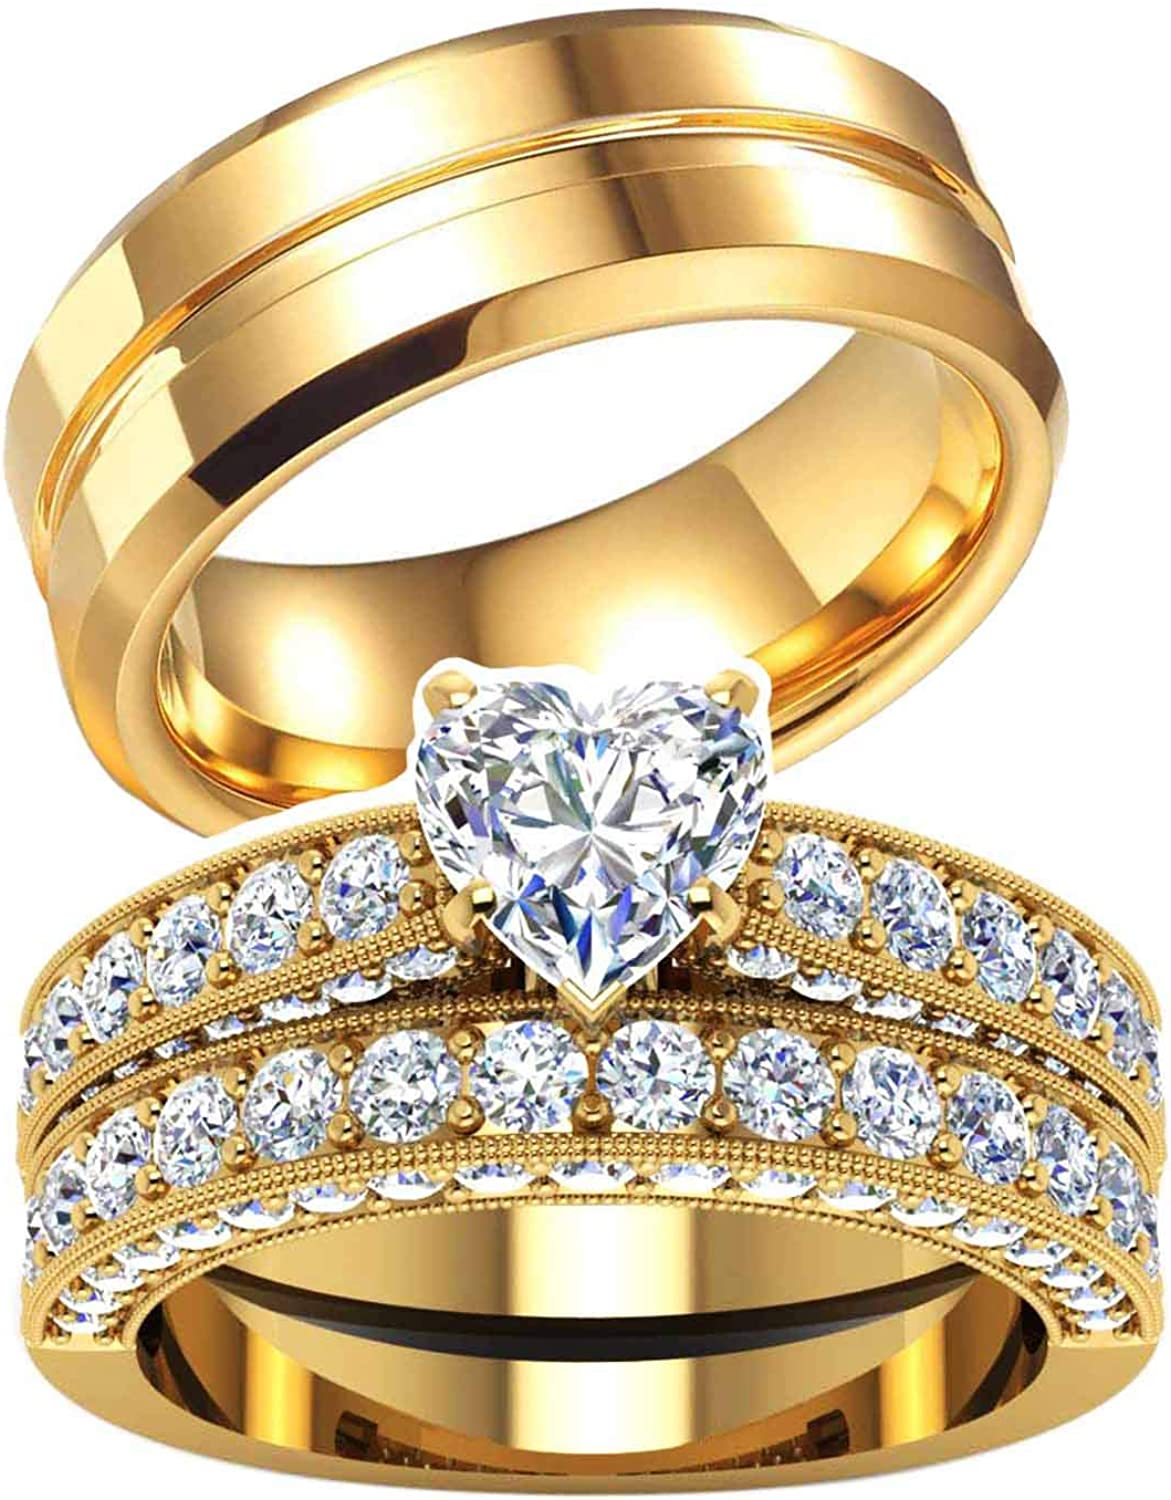 Two Rings His Hers Wedding Ring 10k Sets Mail order cheap Women's New product! New type Y Couples